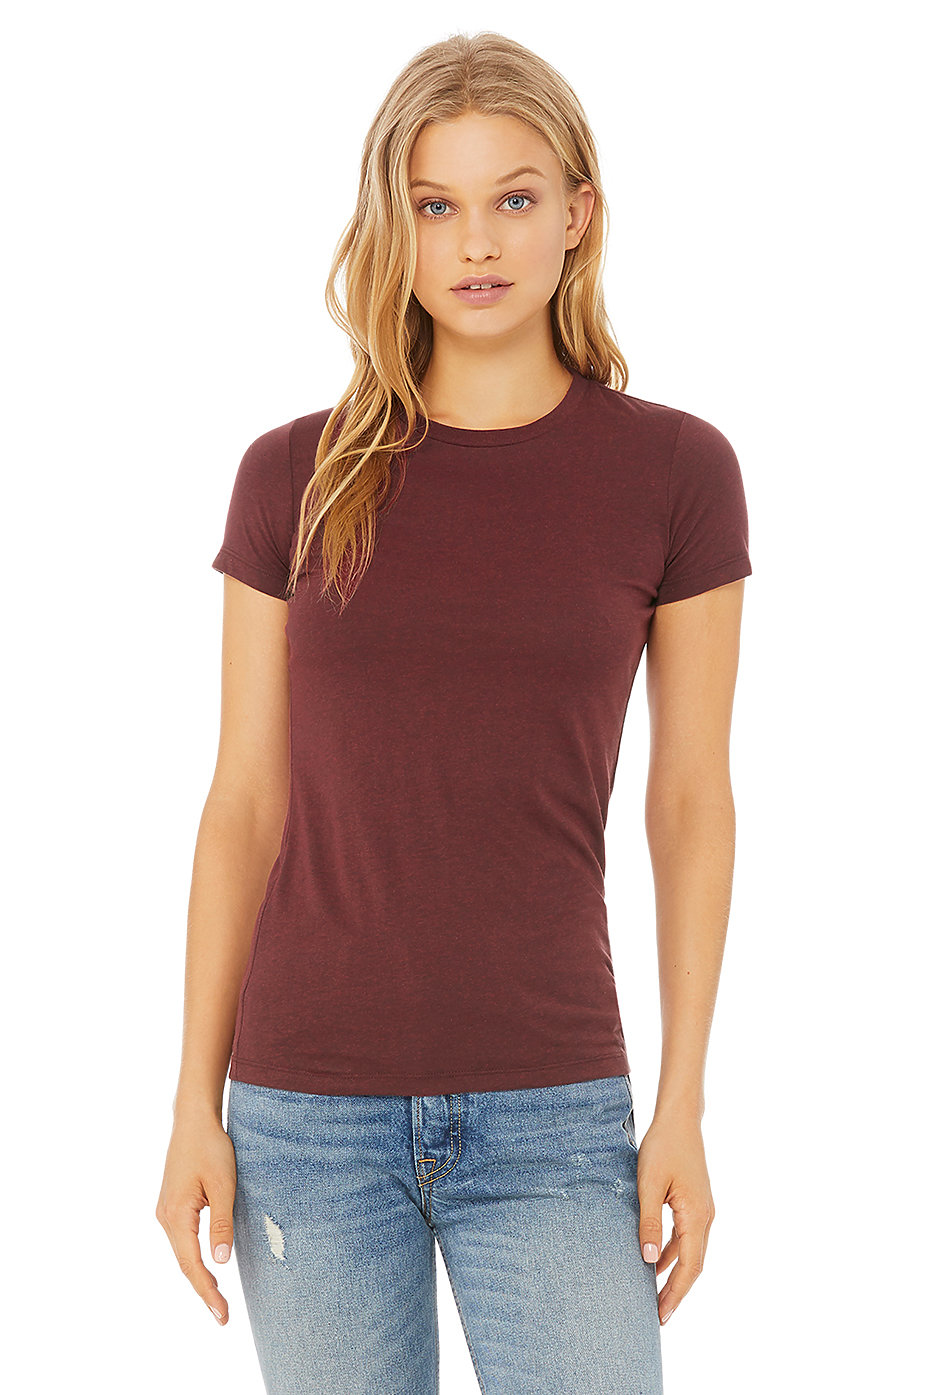 43776a0c66 6004 Women s The Favorite Tee